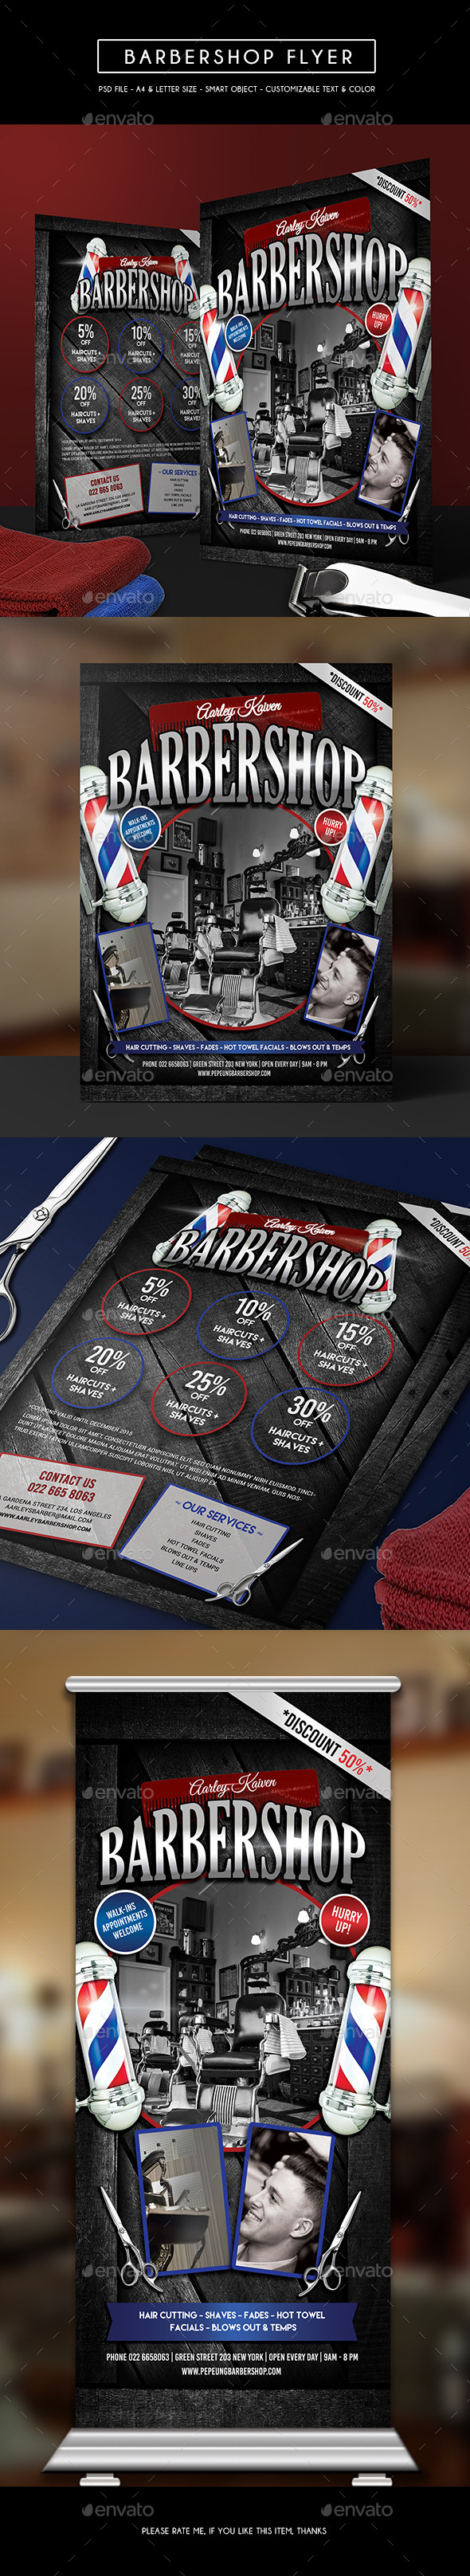 Barbershop Flyer + Roll Up Banner - Corporate Flyers